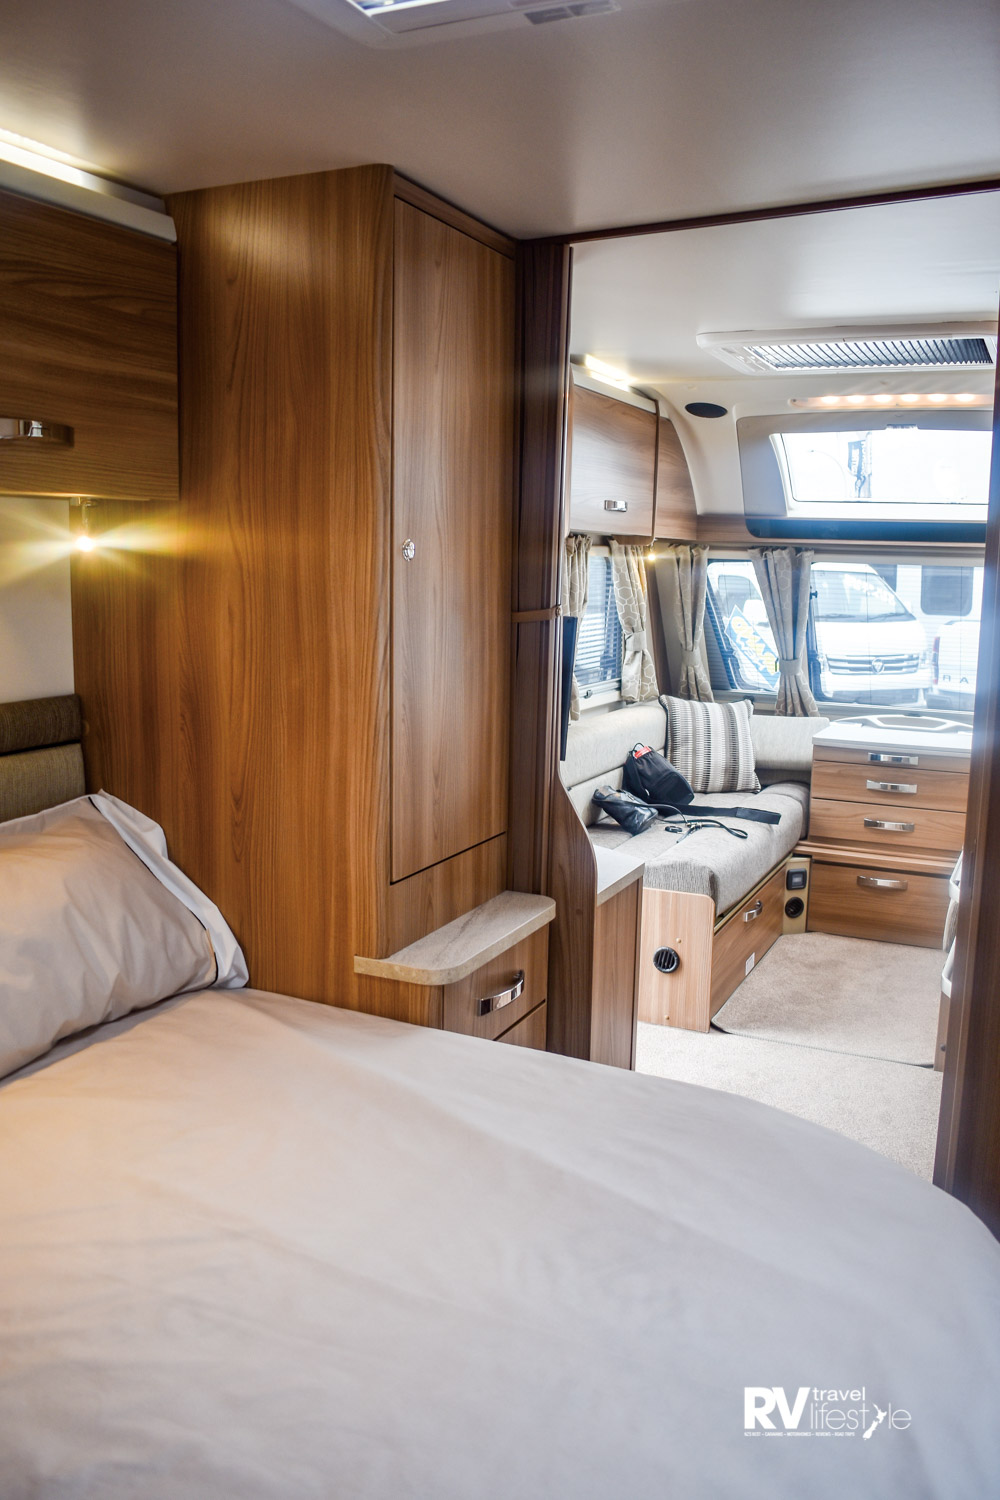 The bedroom becomes a luxurious master with ensuite when two are touring